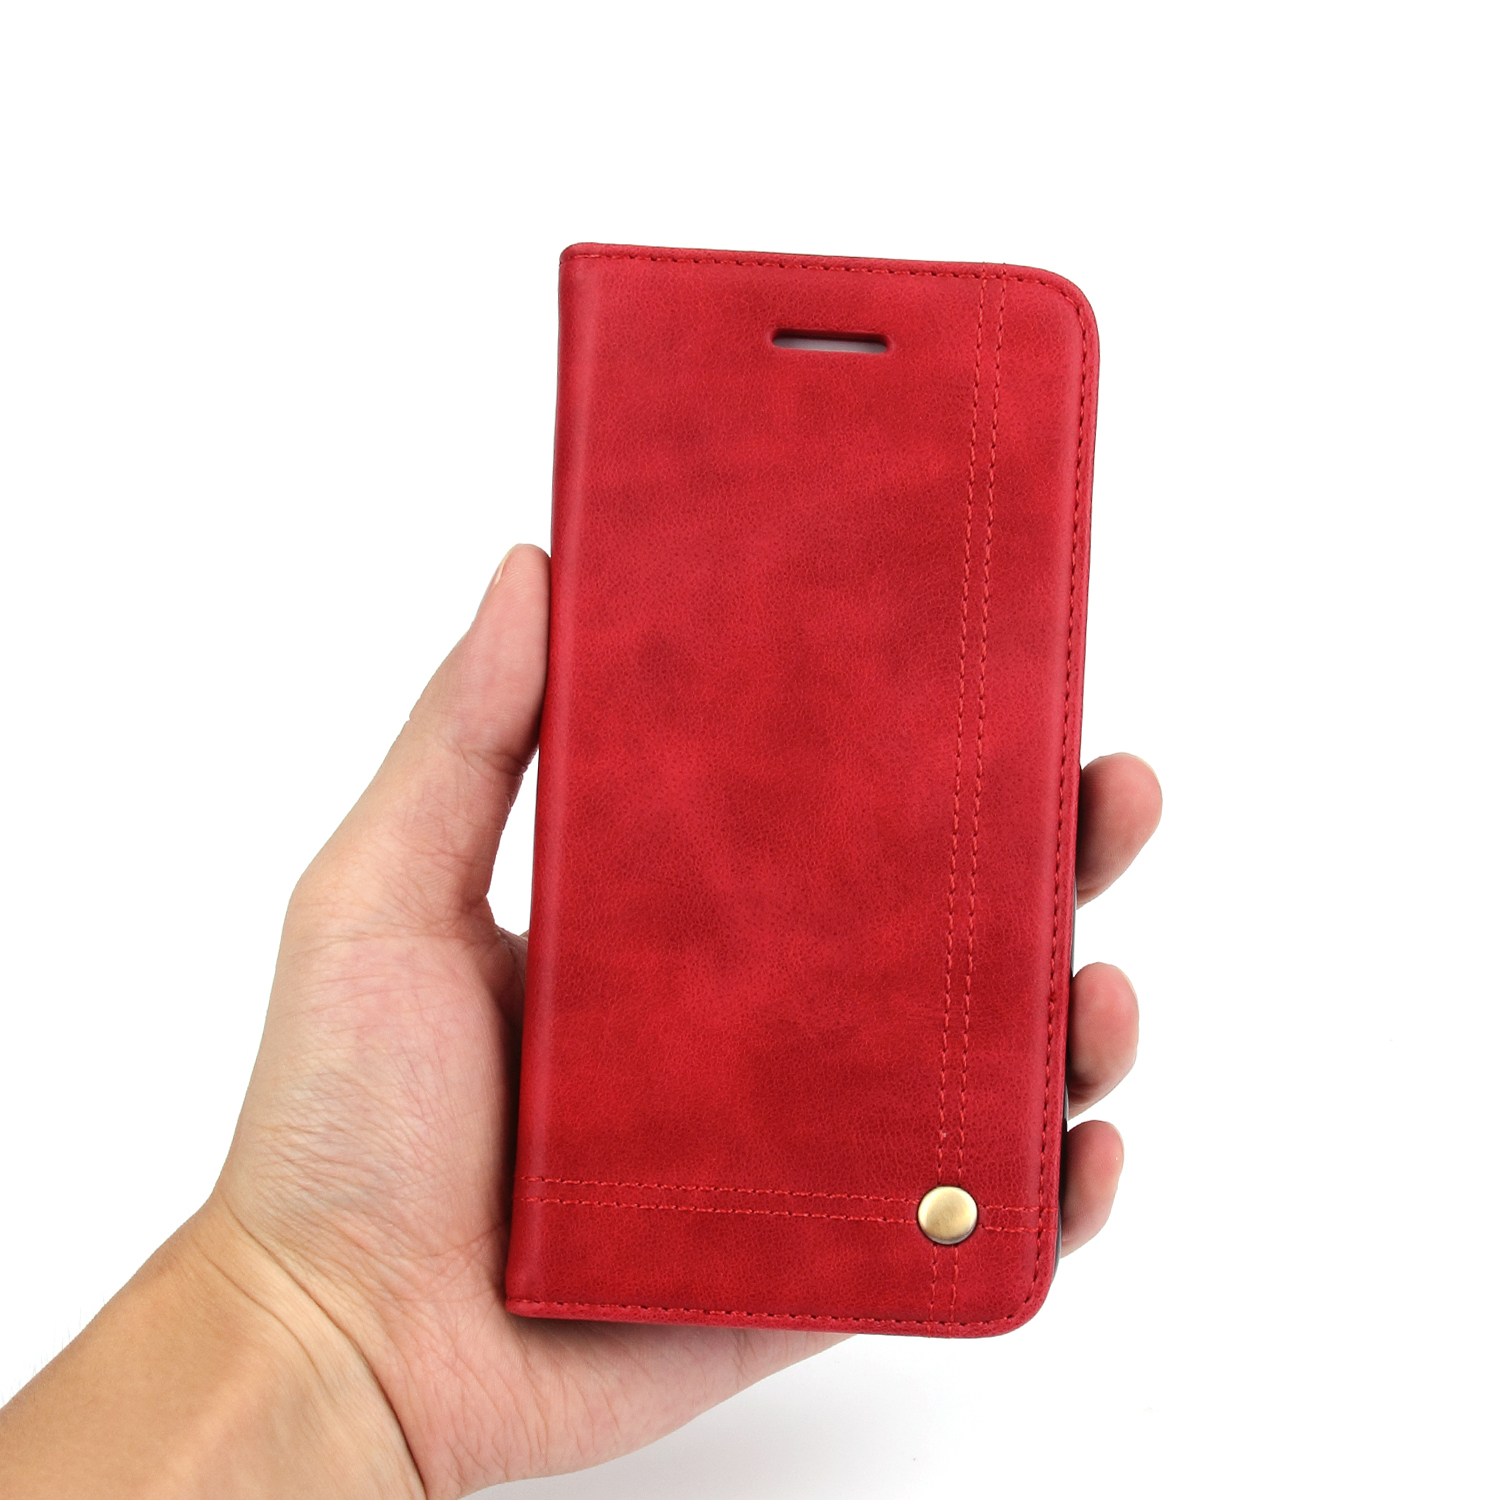 Cell Phone Case <font><b>For</b></font> Apple <font><b>iPhone</b></font> <font><b>6</b></font> <font><b>Plus</b></font> 5.5inch PU Leather Cover Retro Crazy Horse Flip Case Mobile Phone Bag <font><b>For</b></font> <font><b>iPhone</b></font> 6S <font><b>Plus</b></font>